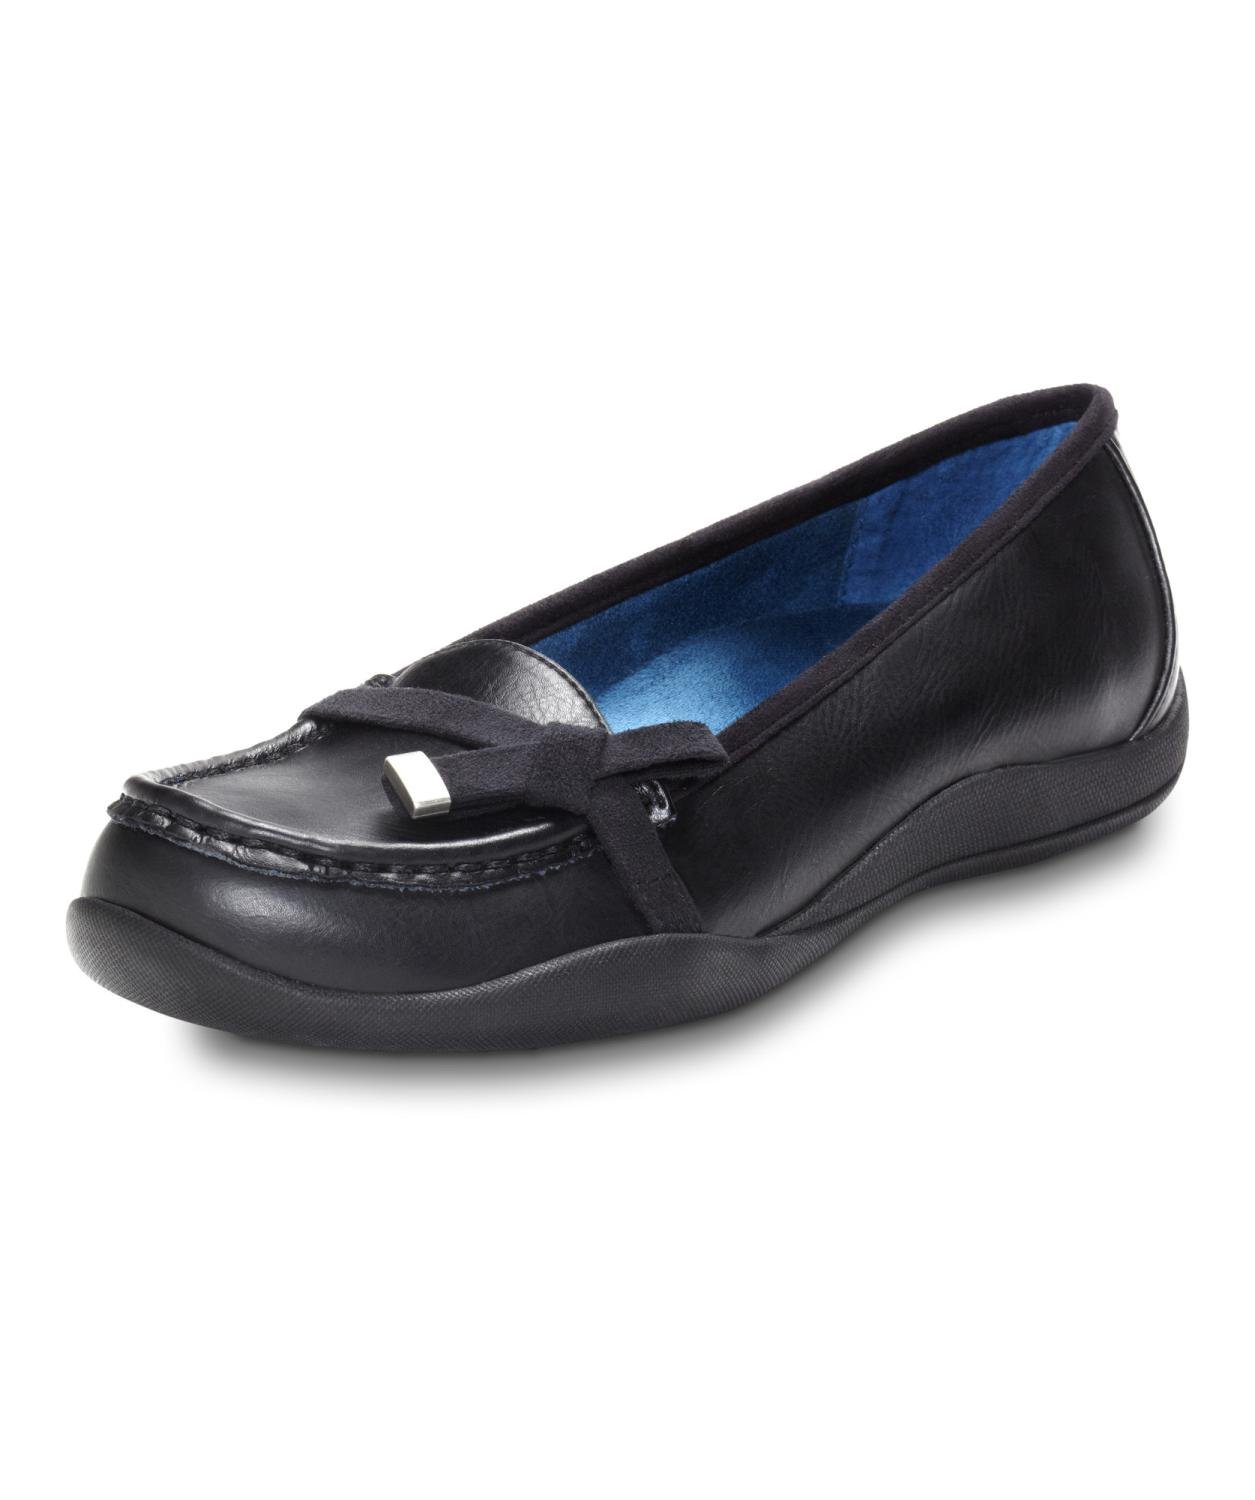 orthaheel mae orthotic flats free shipping